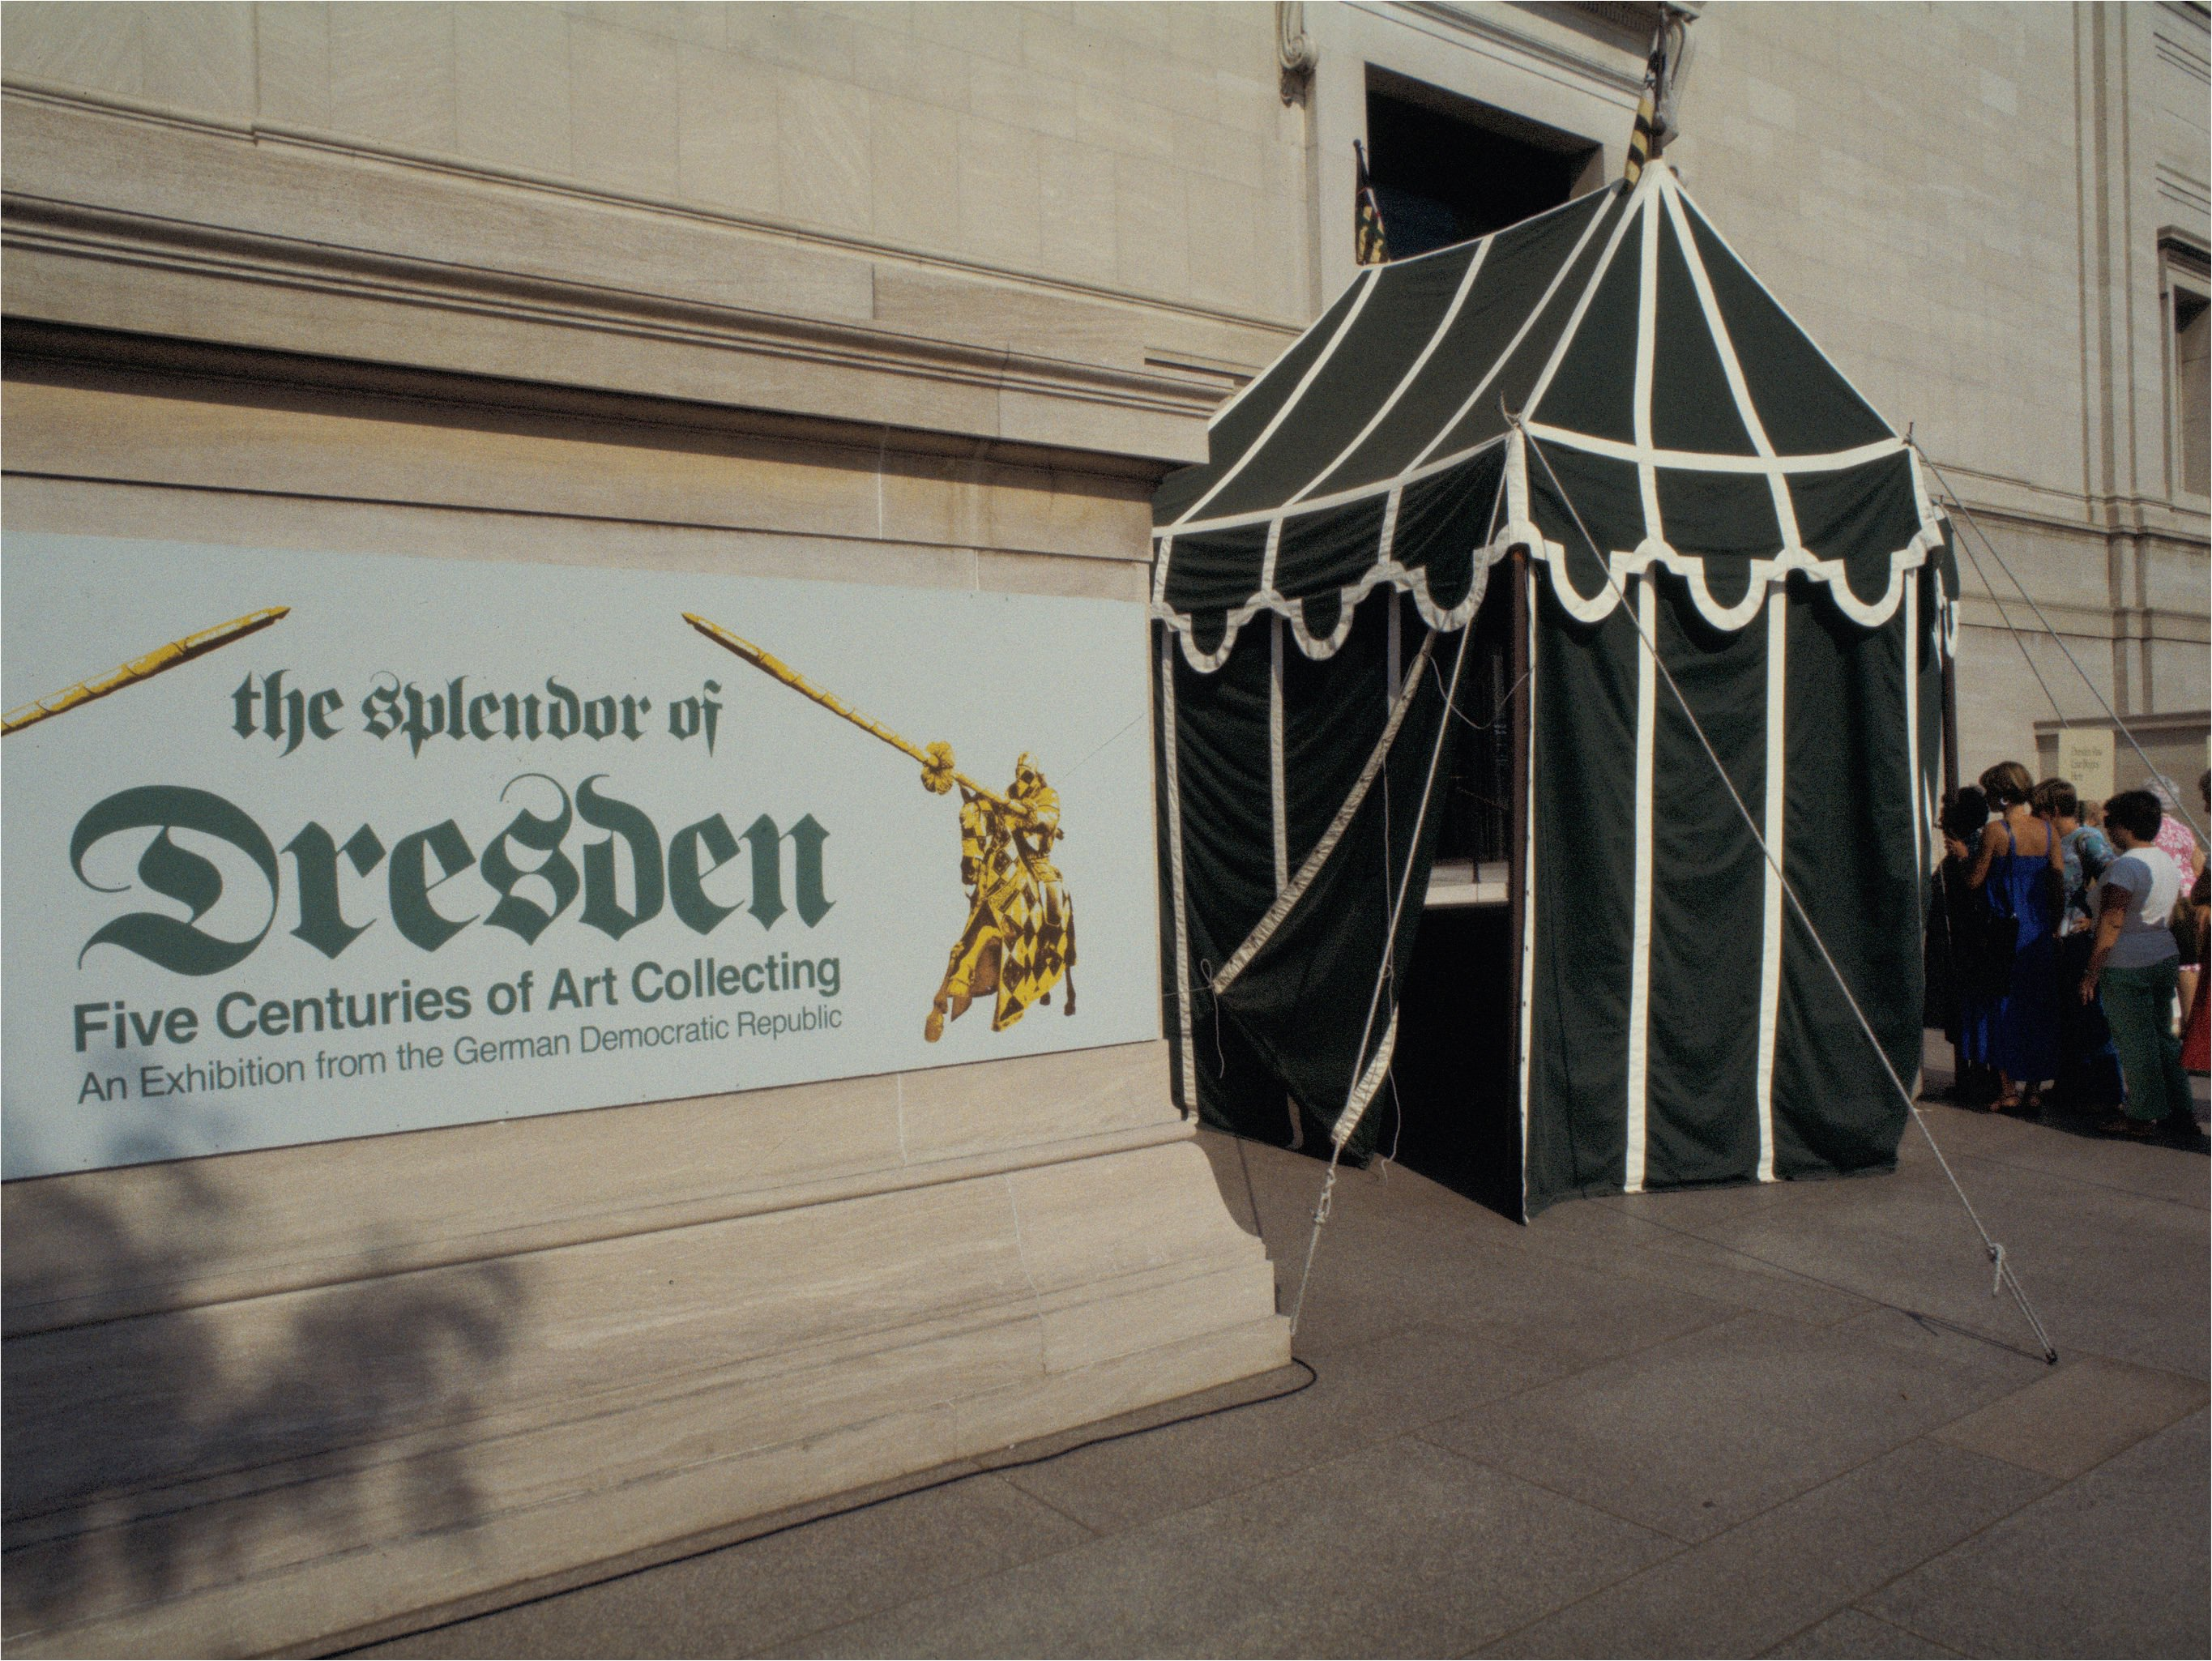 The colorful exhibition 'The Splendors of Dresden' opened the new East Wing of Washington, DC's National Gallery of Art in 1978.